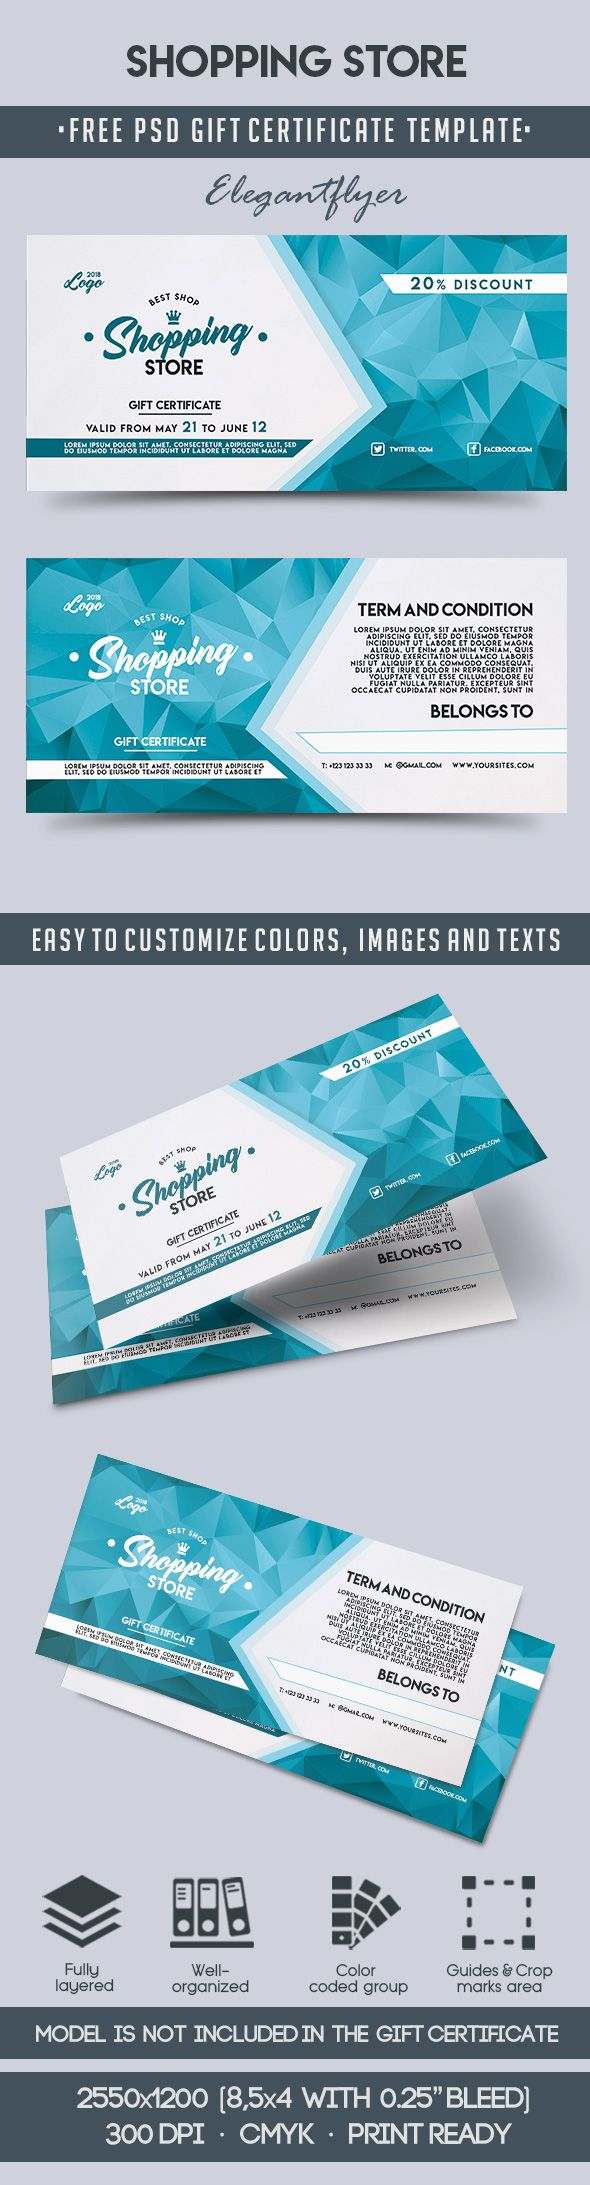 Shopping Store – Free Gift Certificate PSD Template